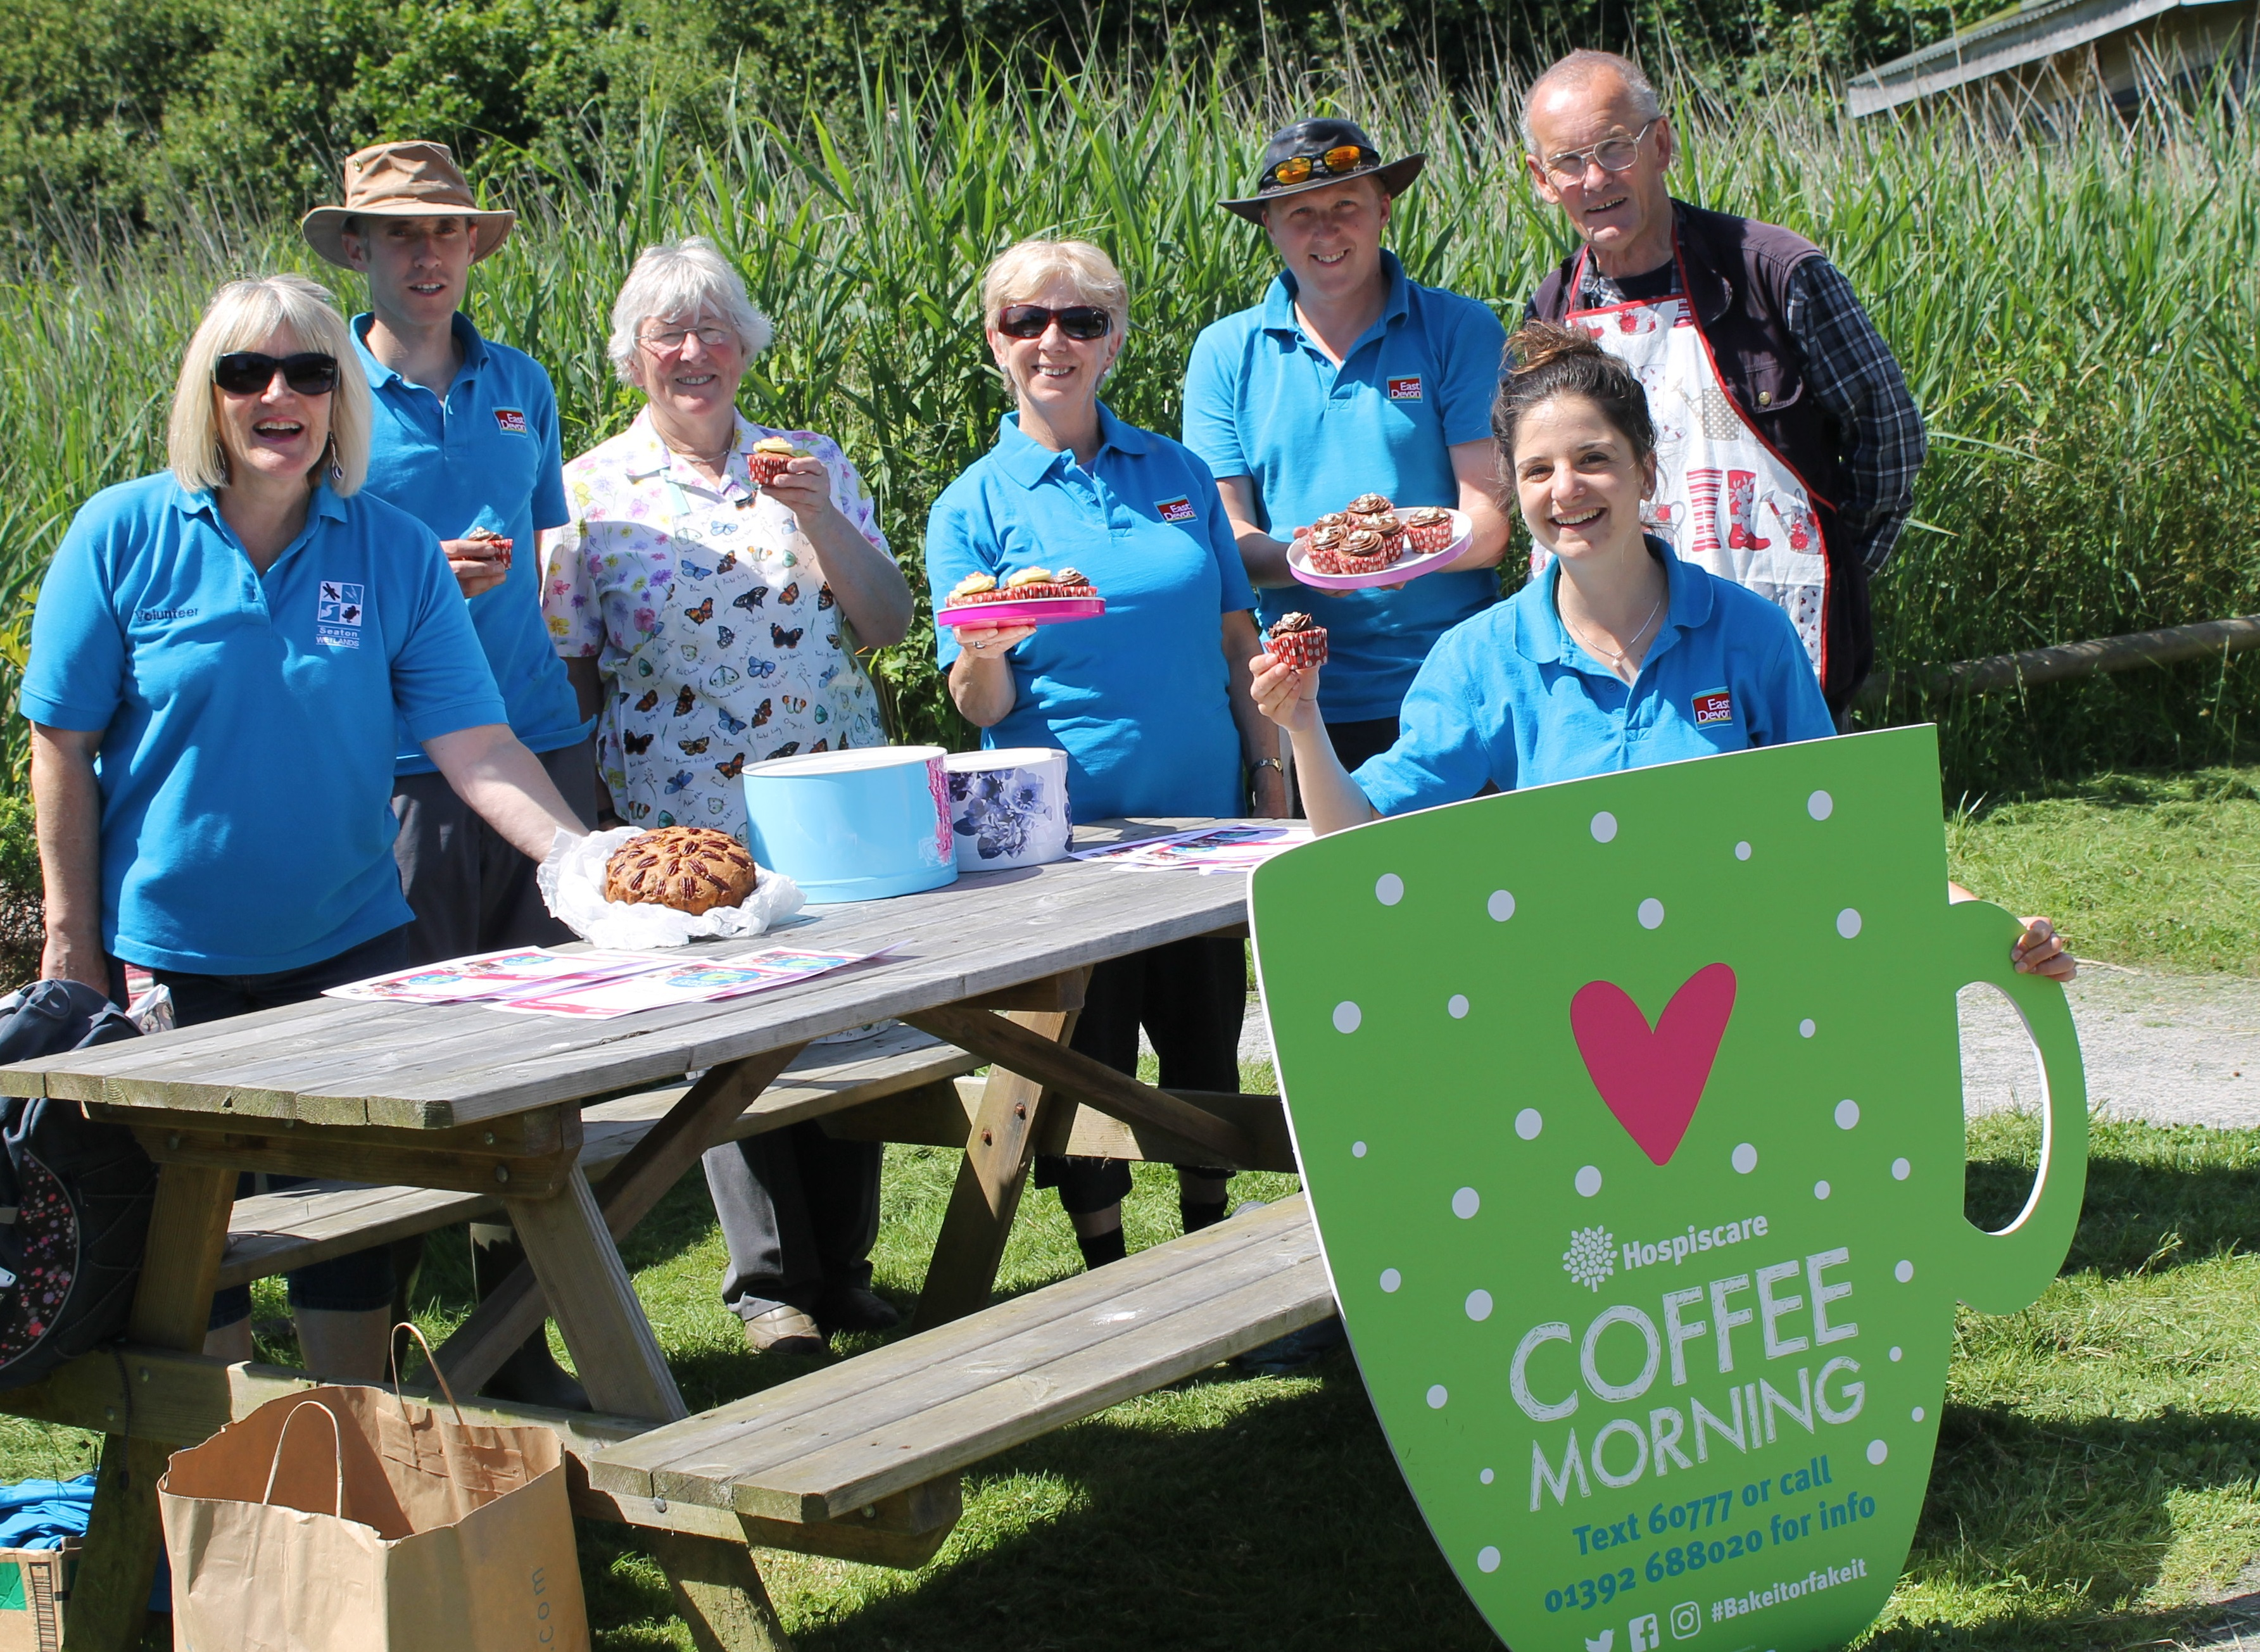 Hospiscare coffee morning